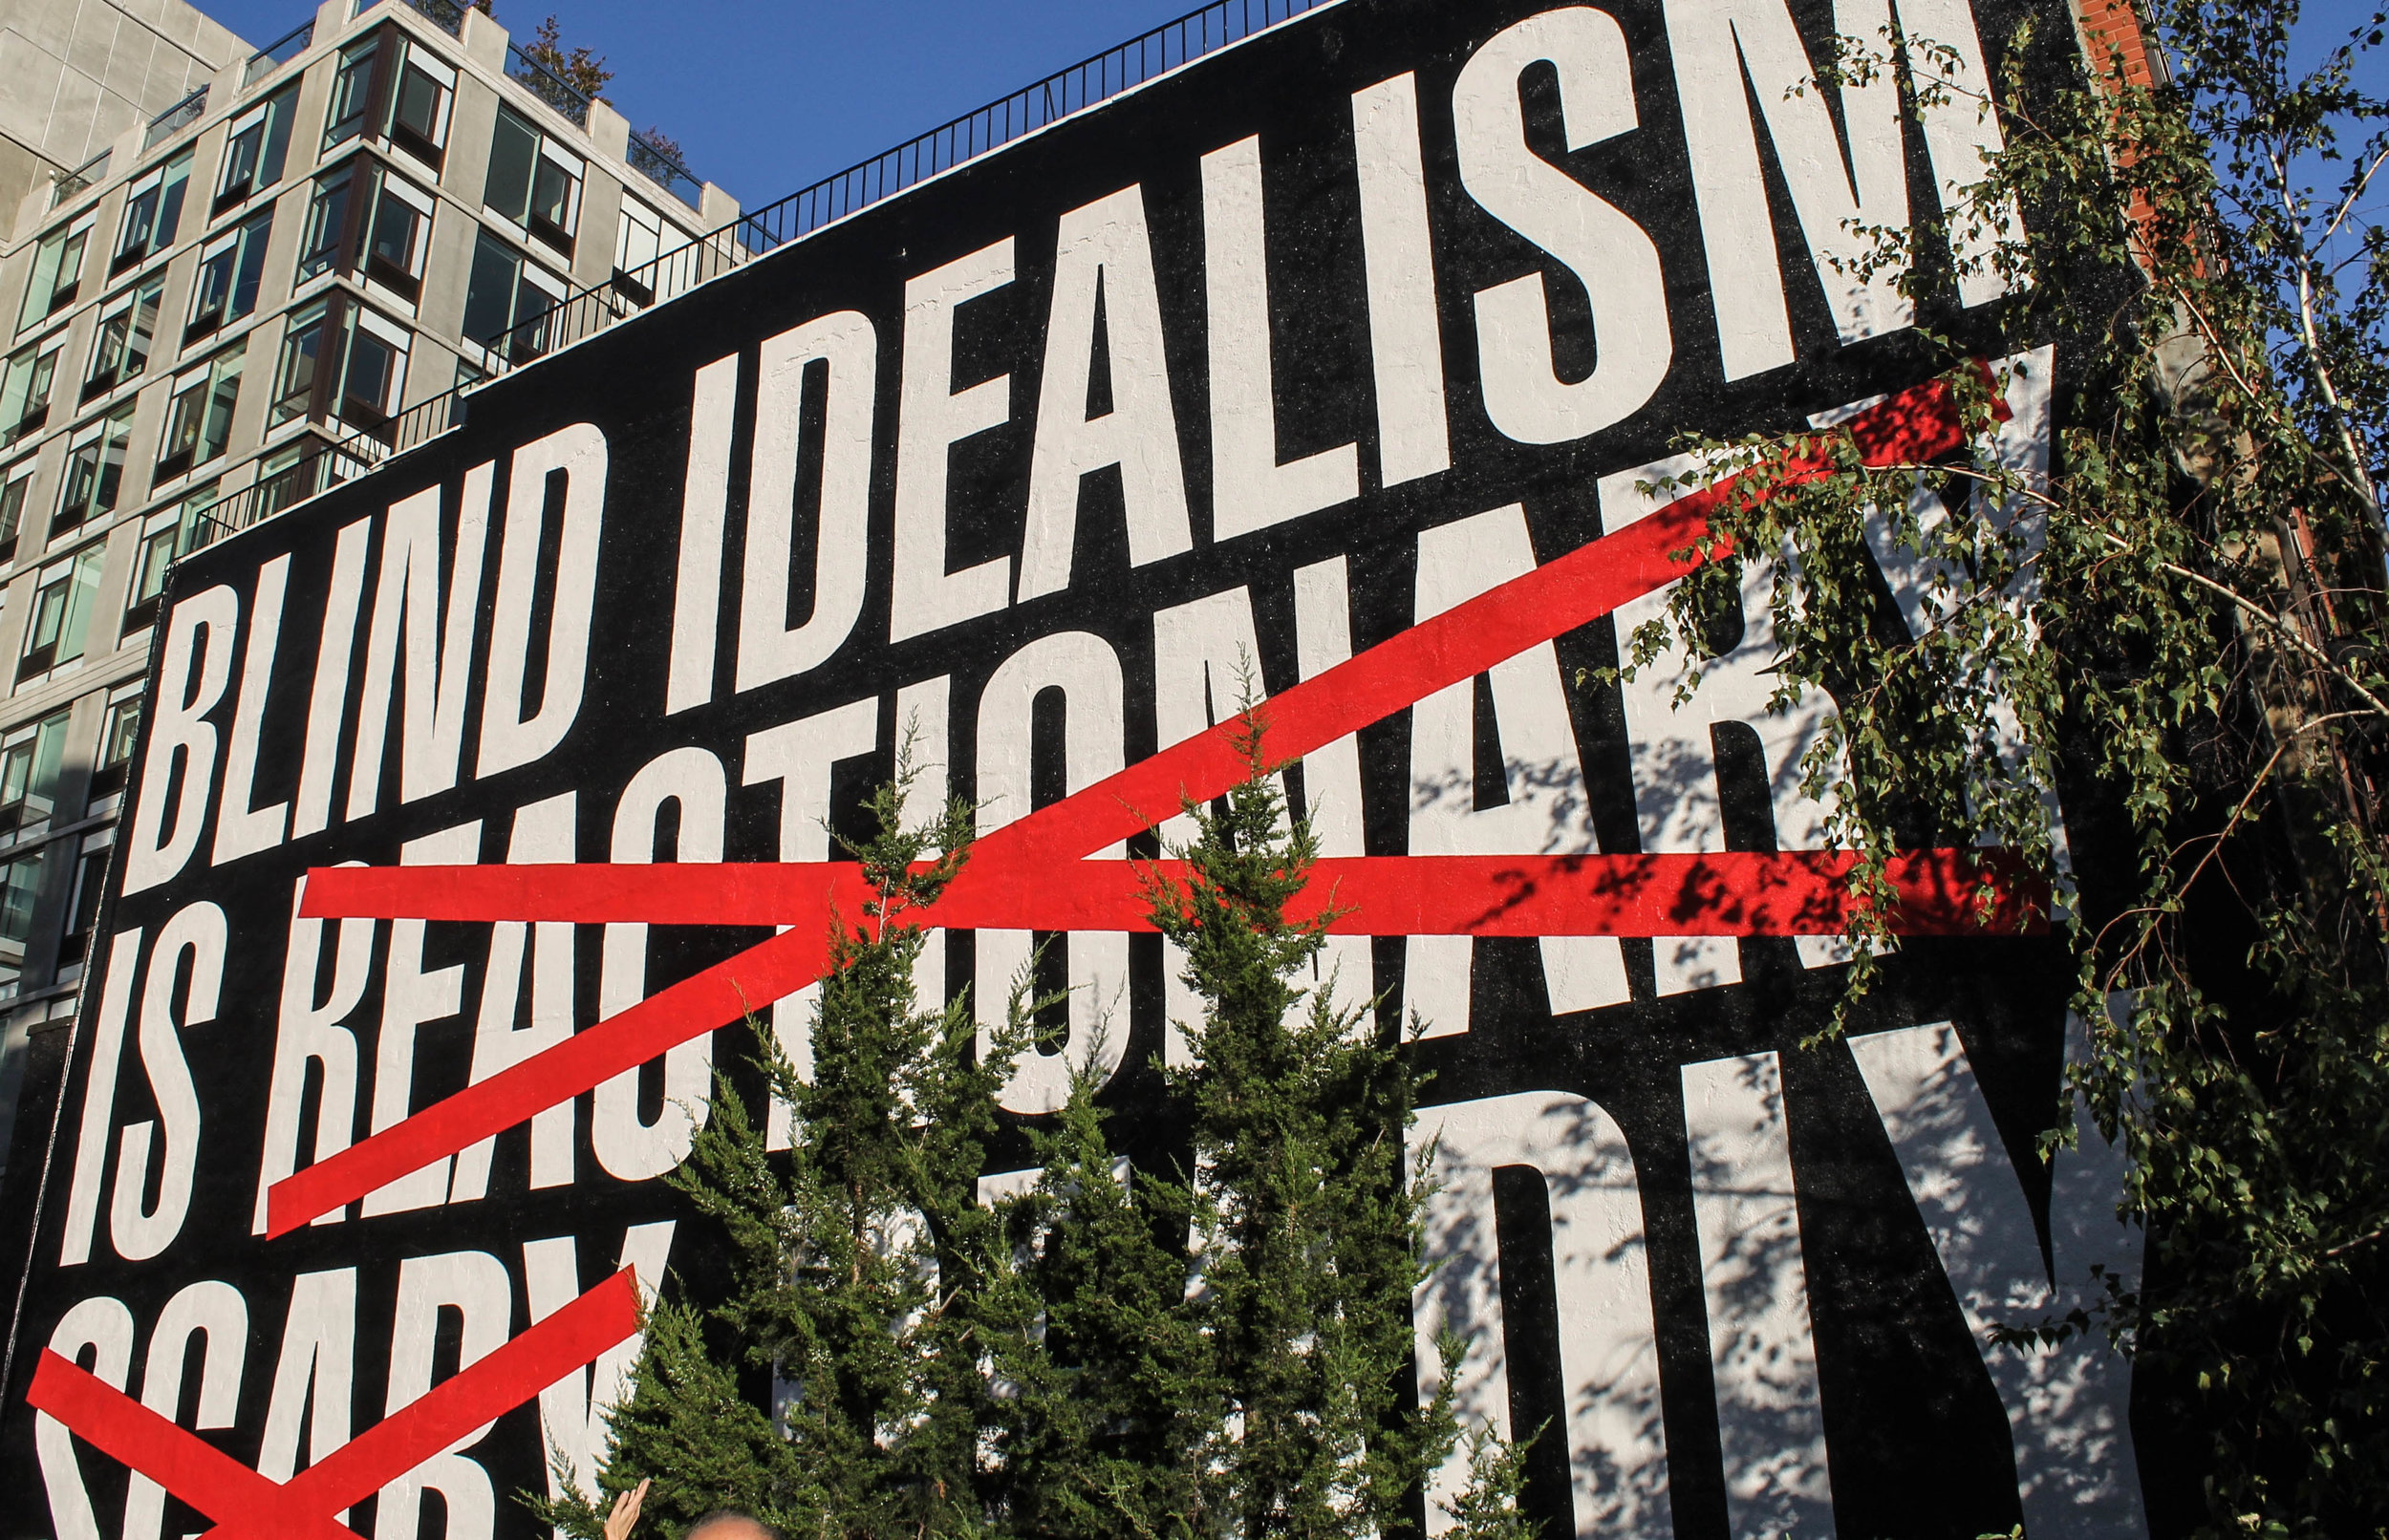 nyc-highline-blind-idealism